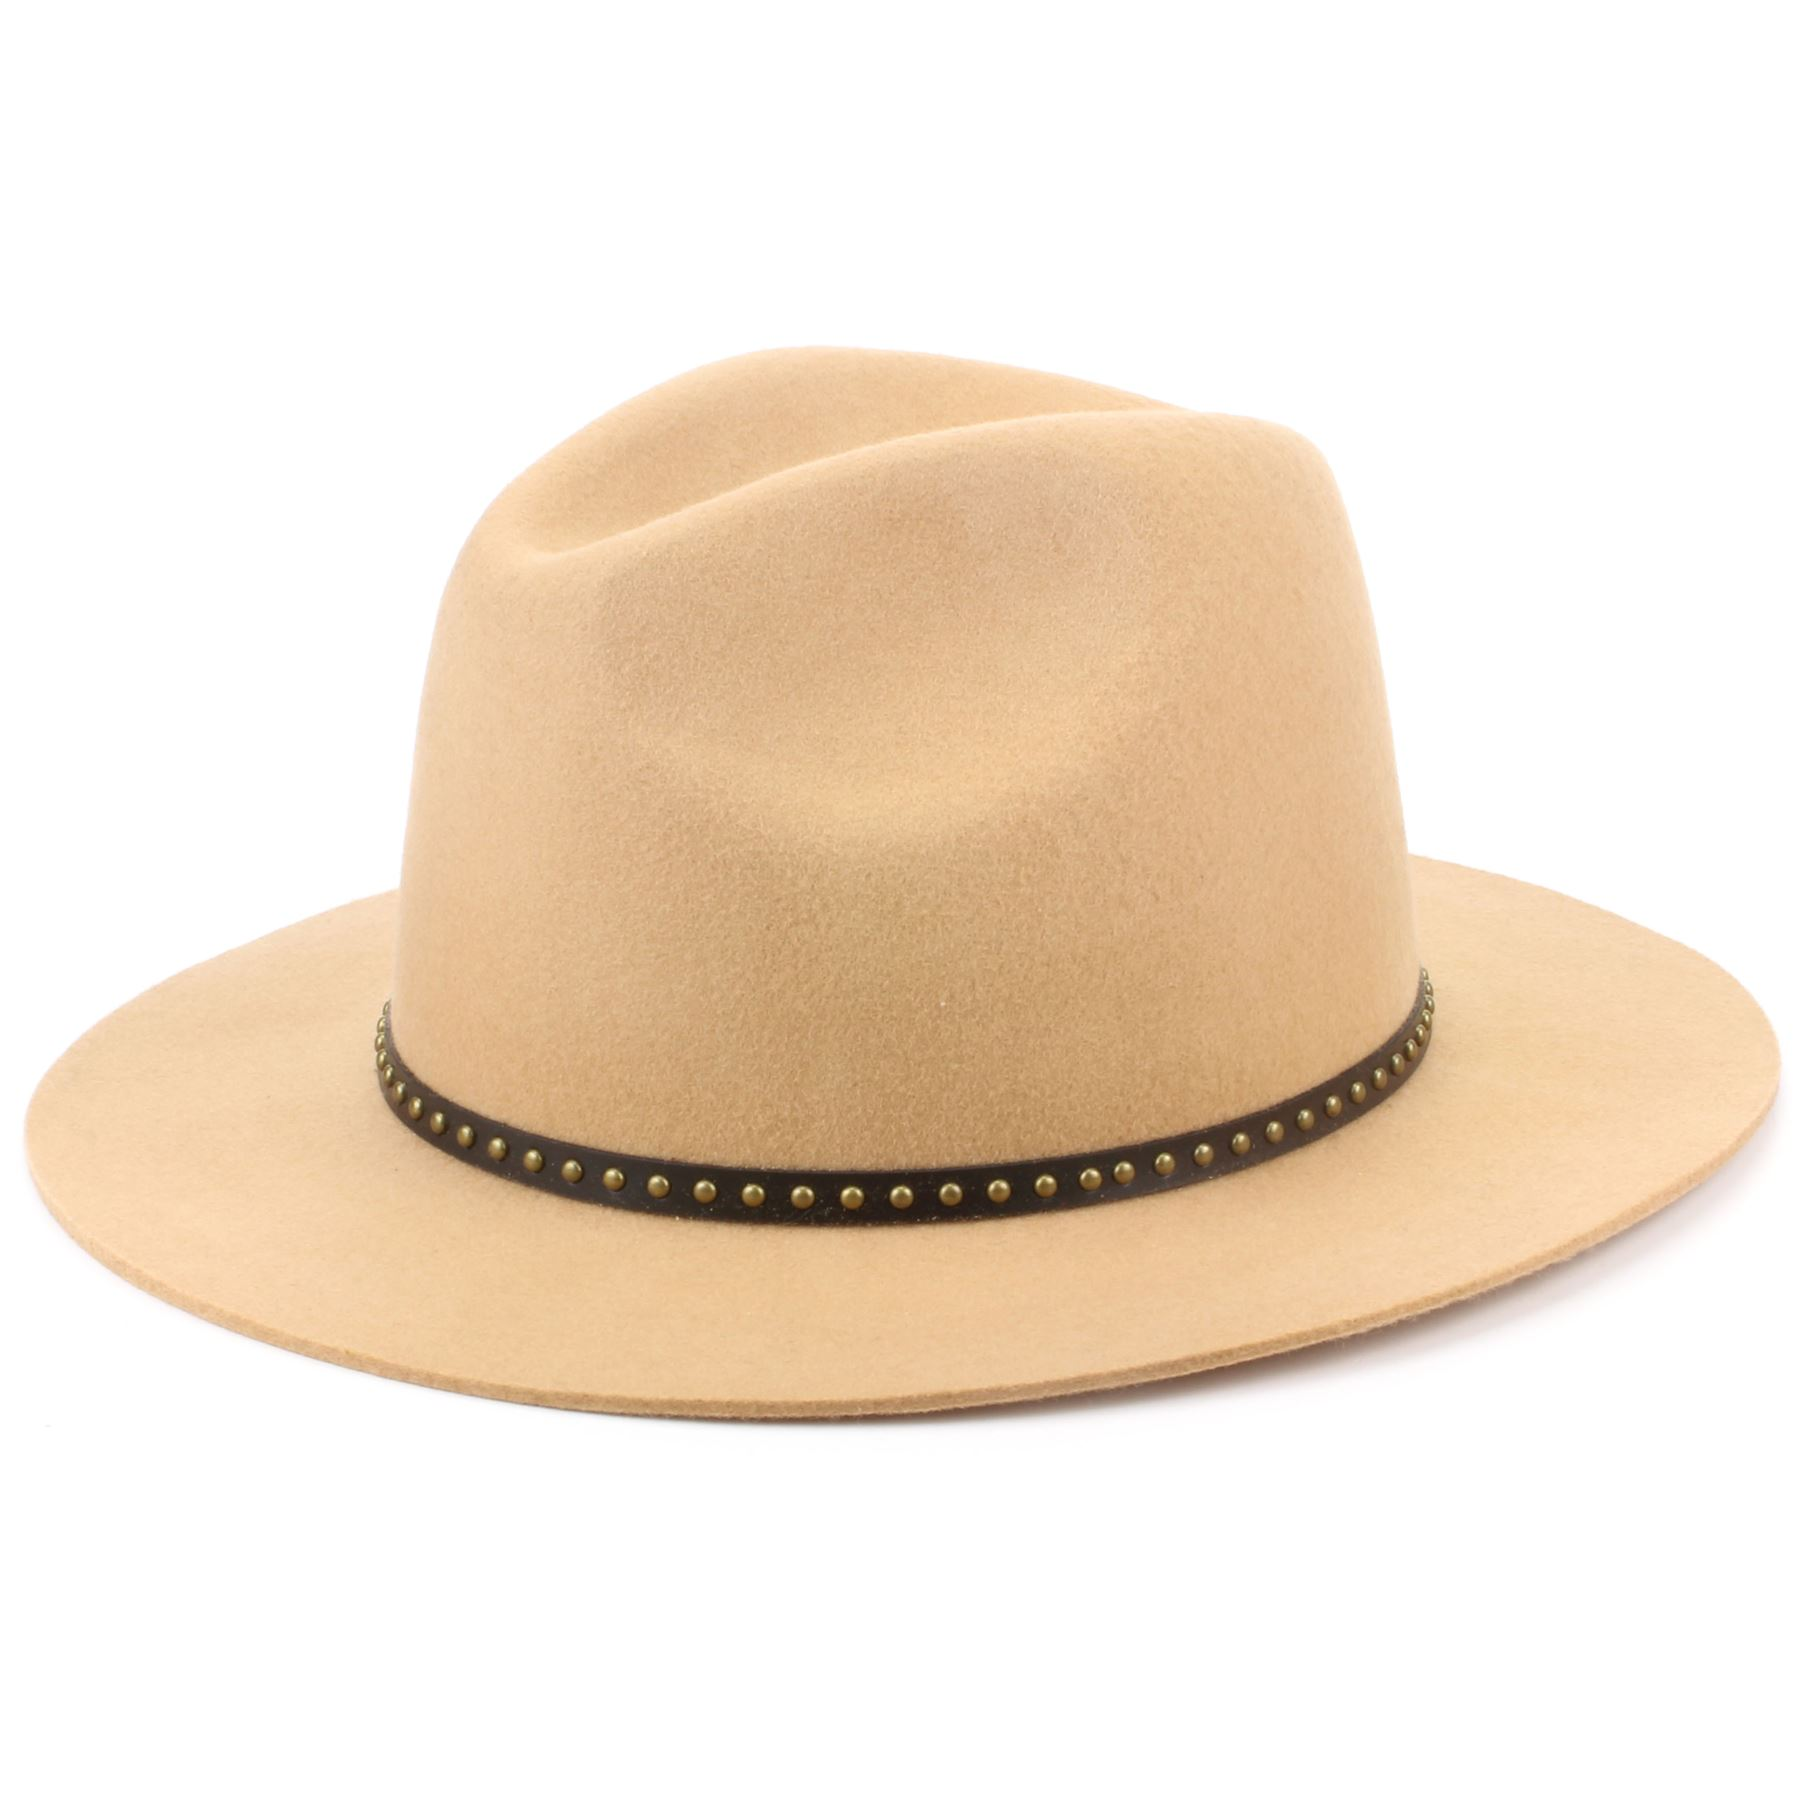 Customize your avatar with the Beige Pith Helmet and millions of other items. Mix & match this hat with other items to create an avatar that is unique to you!